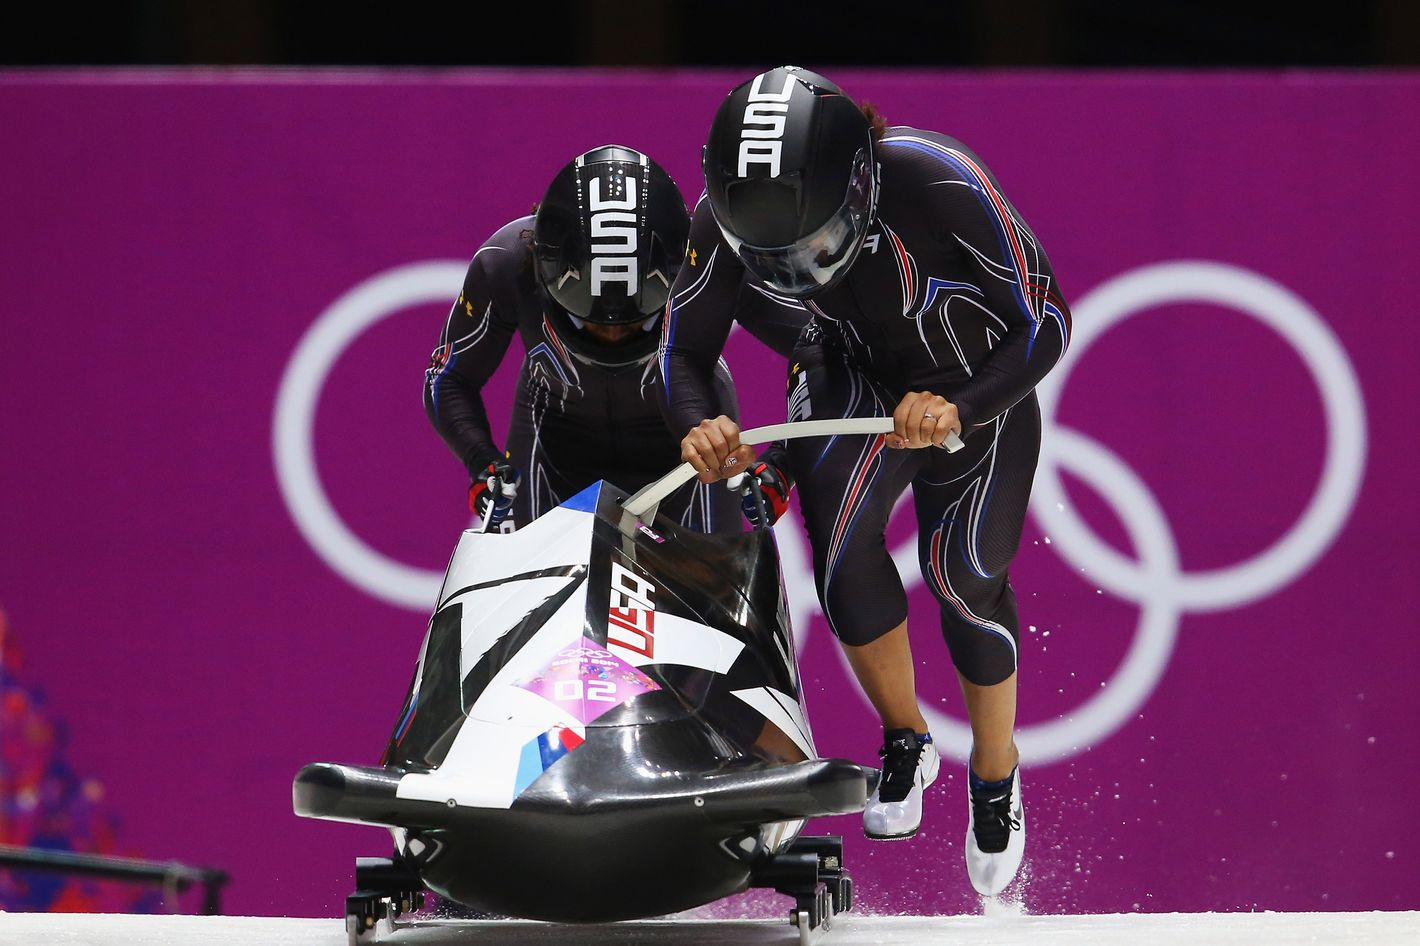 Elana Meyers and Lauryn Williams of the United States team 1 make a run during the Women's Bobsleigh heats on day 11 of the Sochi 2014 Winter Olympics at Sliding Center Sanki on February 18, 2014 in Sochi, Russia.